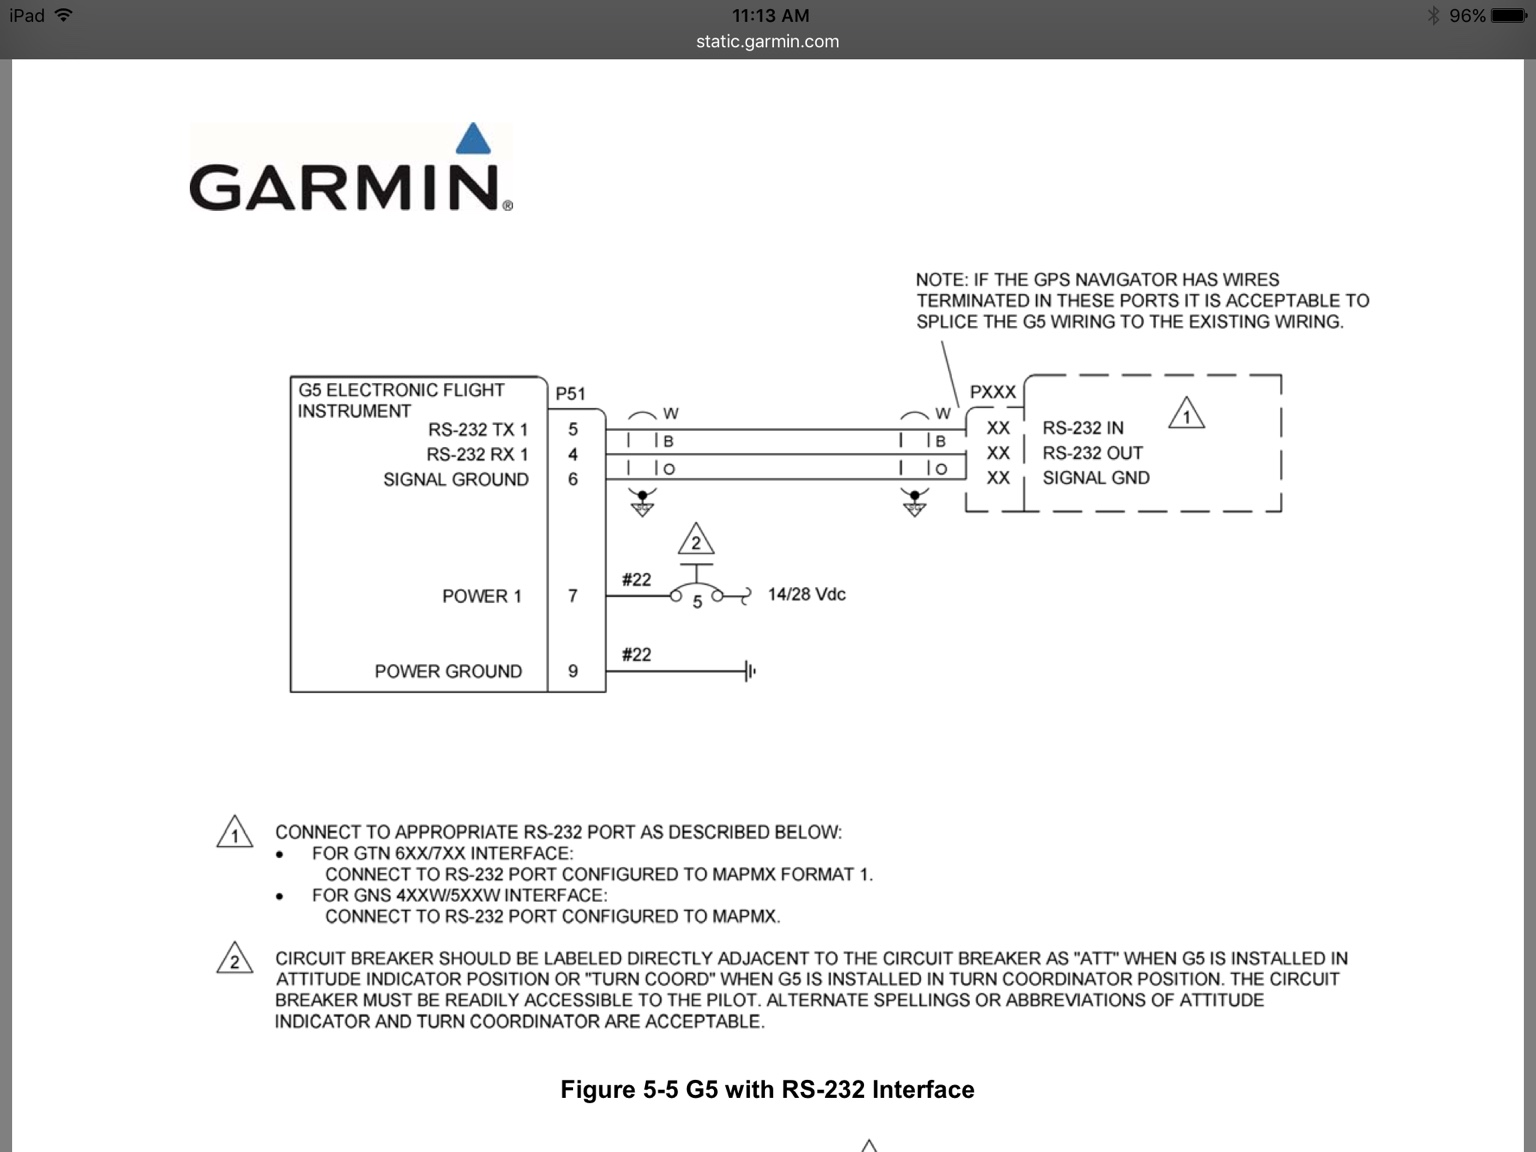 Garmin 430 Wiring Diagram - Wiring Diagram Data on atx connector diagram, garmin network cable wiring, garmin usb wiring, data mapping diagram, garmin speedometer, garmin 3010c wiring, garmin sensor,